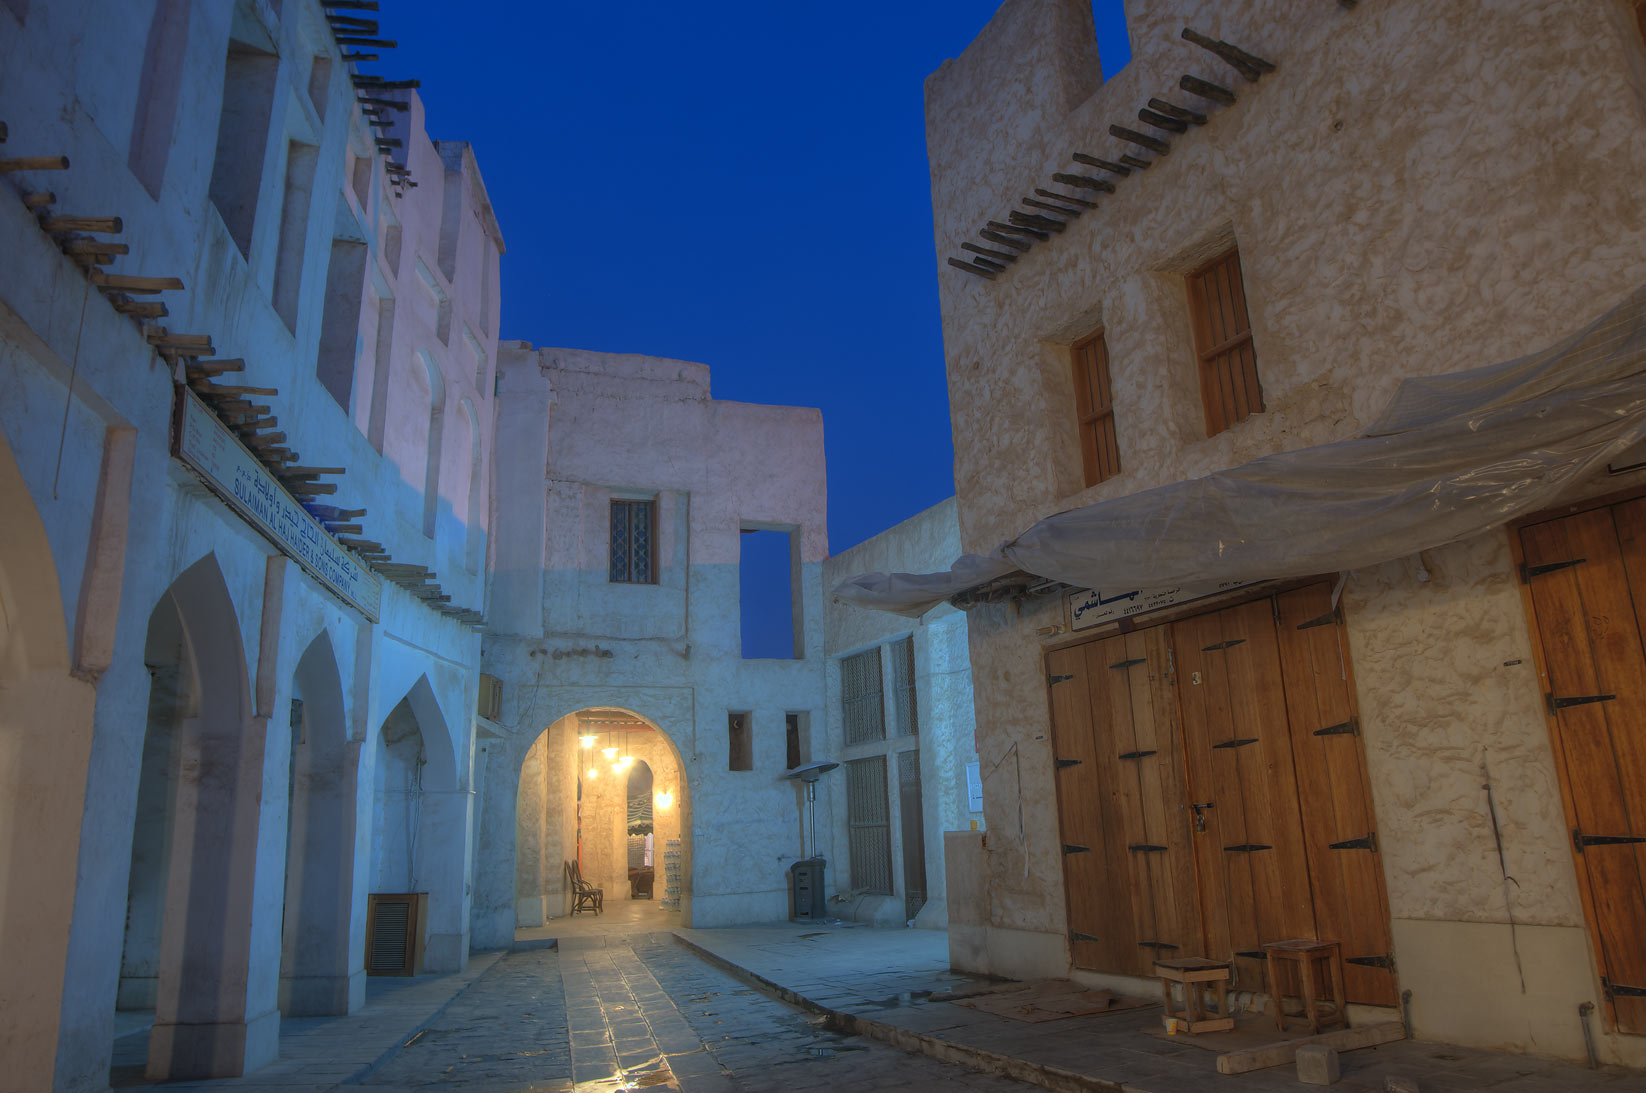 Alley in Souq Waqif (Old Market) at morning. Doha, Qatar